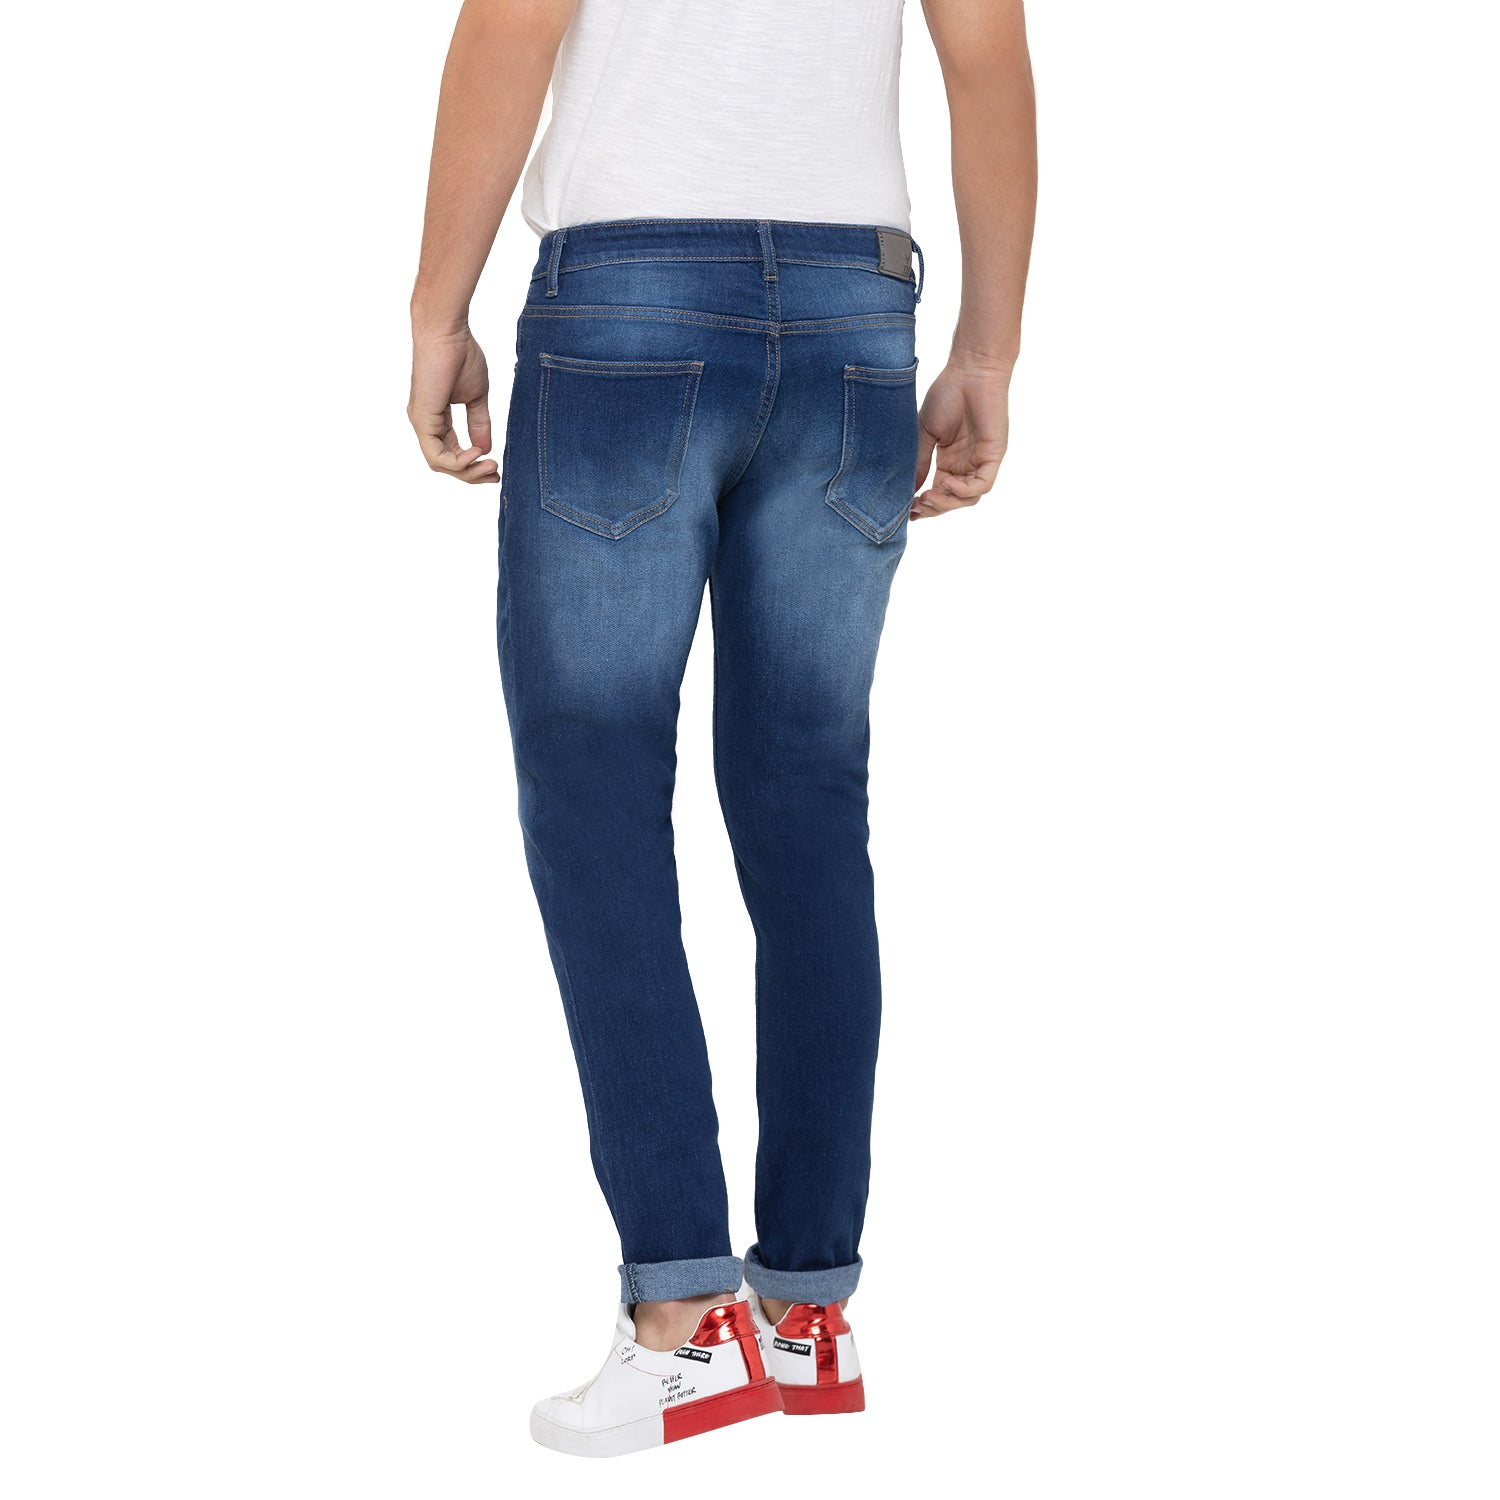 Globus Blue Washed Clean Look Jeans-3